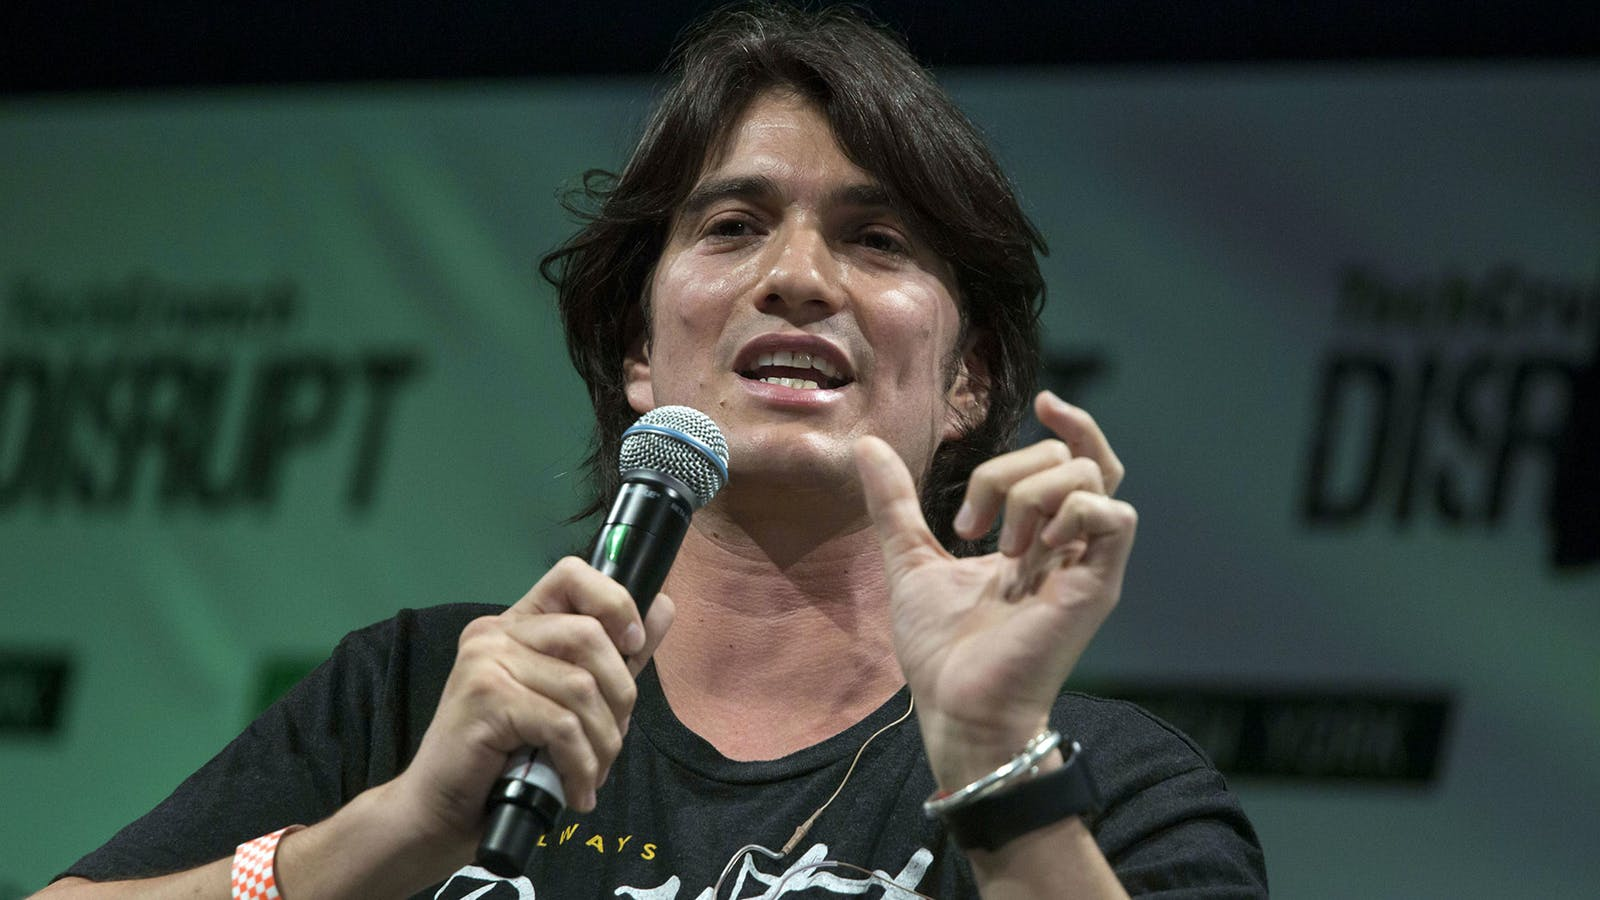 WeWork's former CEO Adam Neumann. Photo by Bloomberg